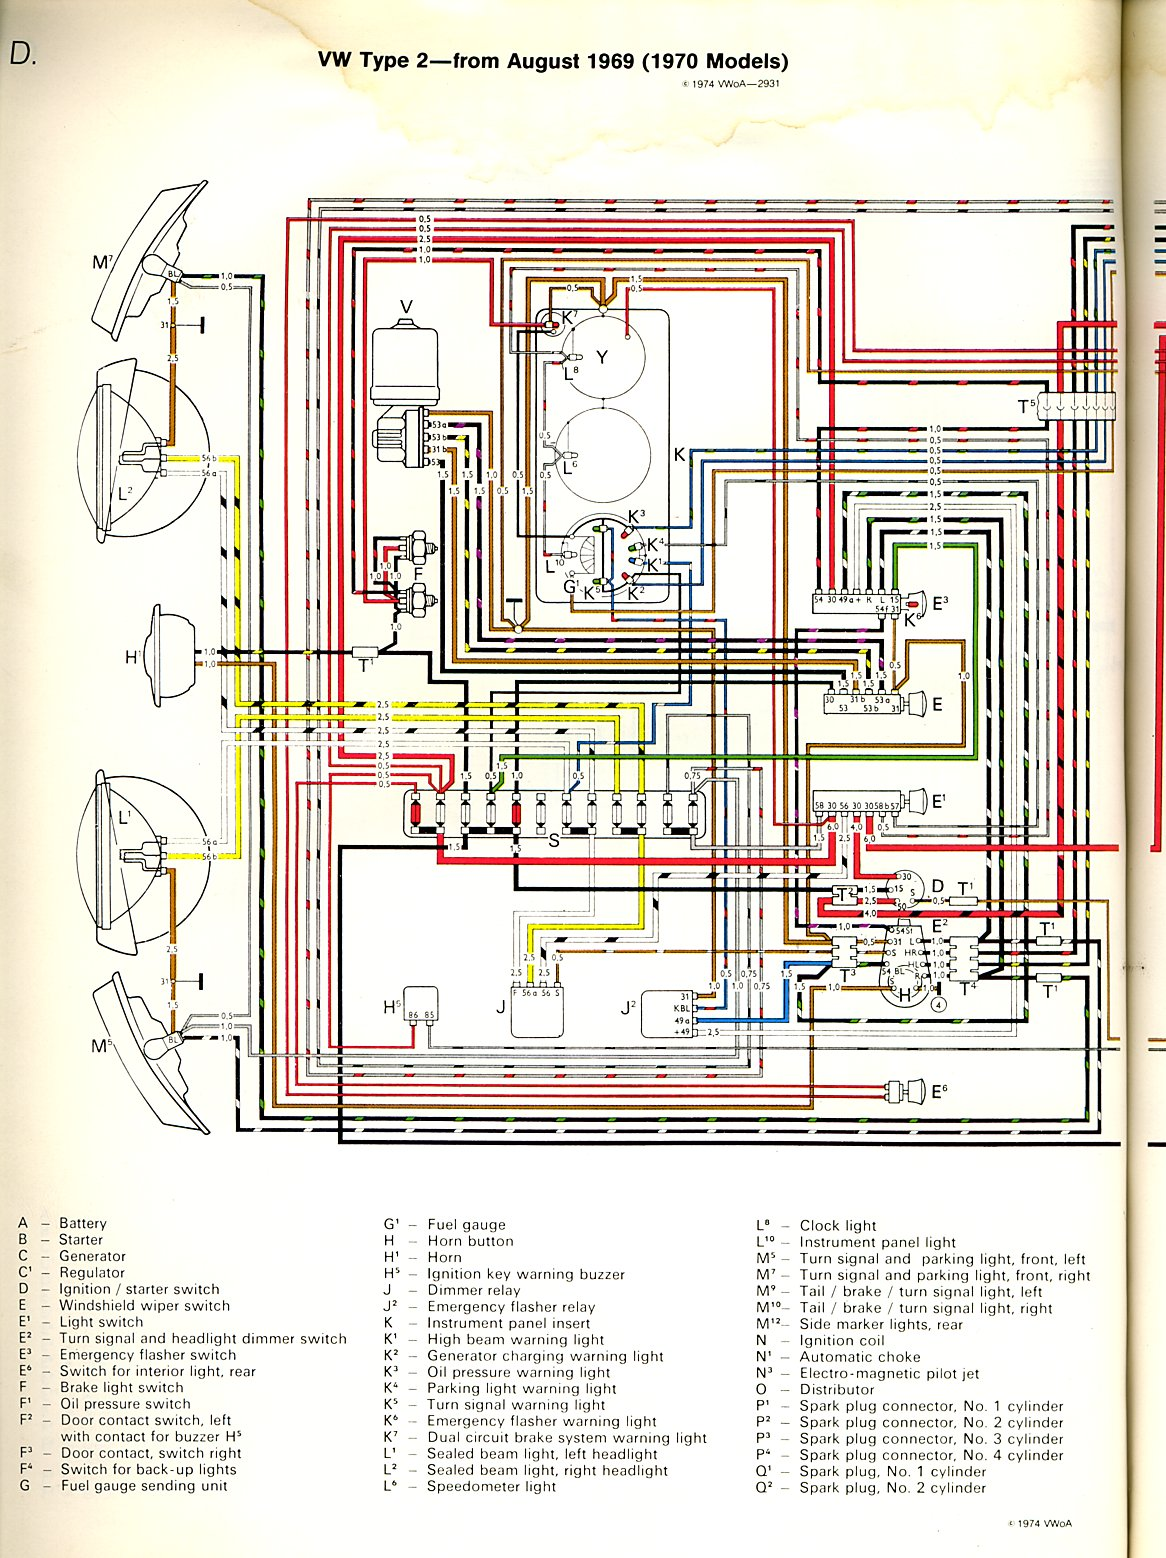 baybus_70a bus wiring diagram vw wiring harness diagram \u2022 wiring diagrams j 1973 Super Beetle Wiring Diagram at reclaimingppi.co